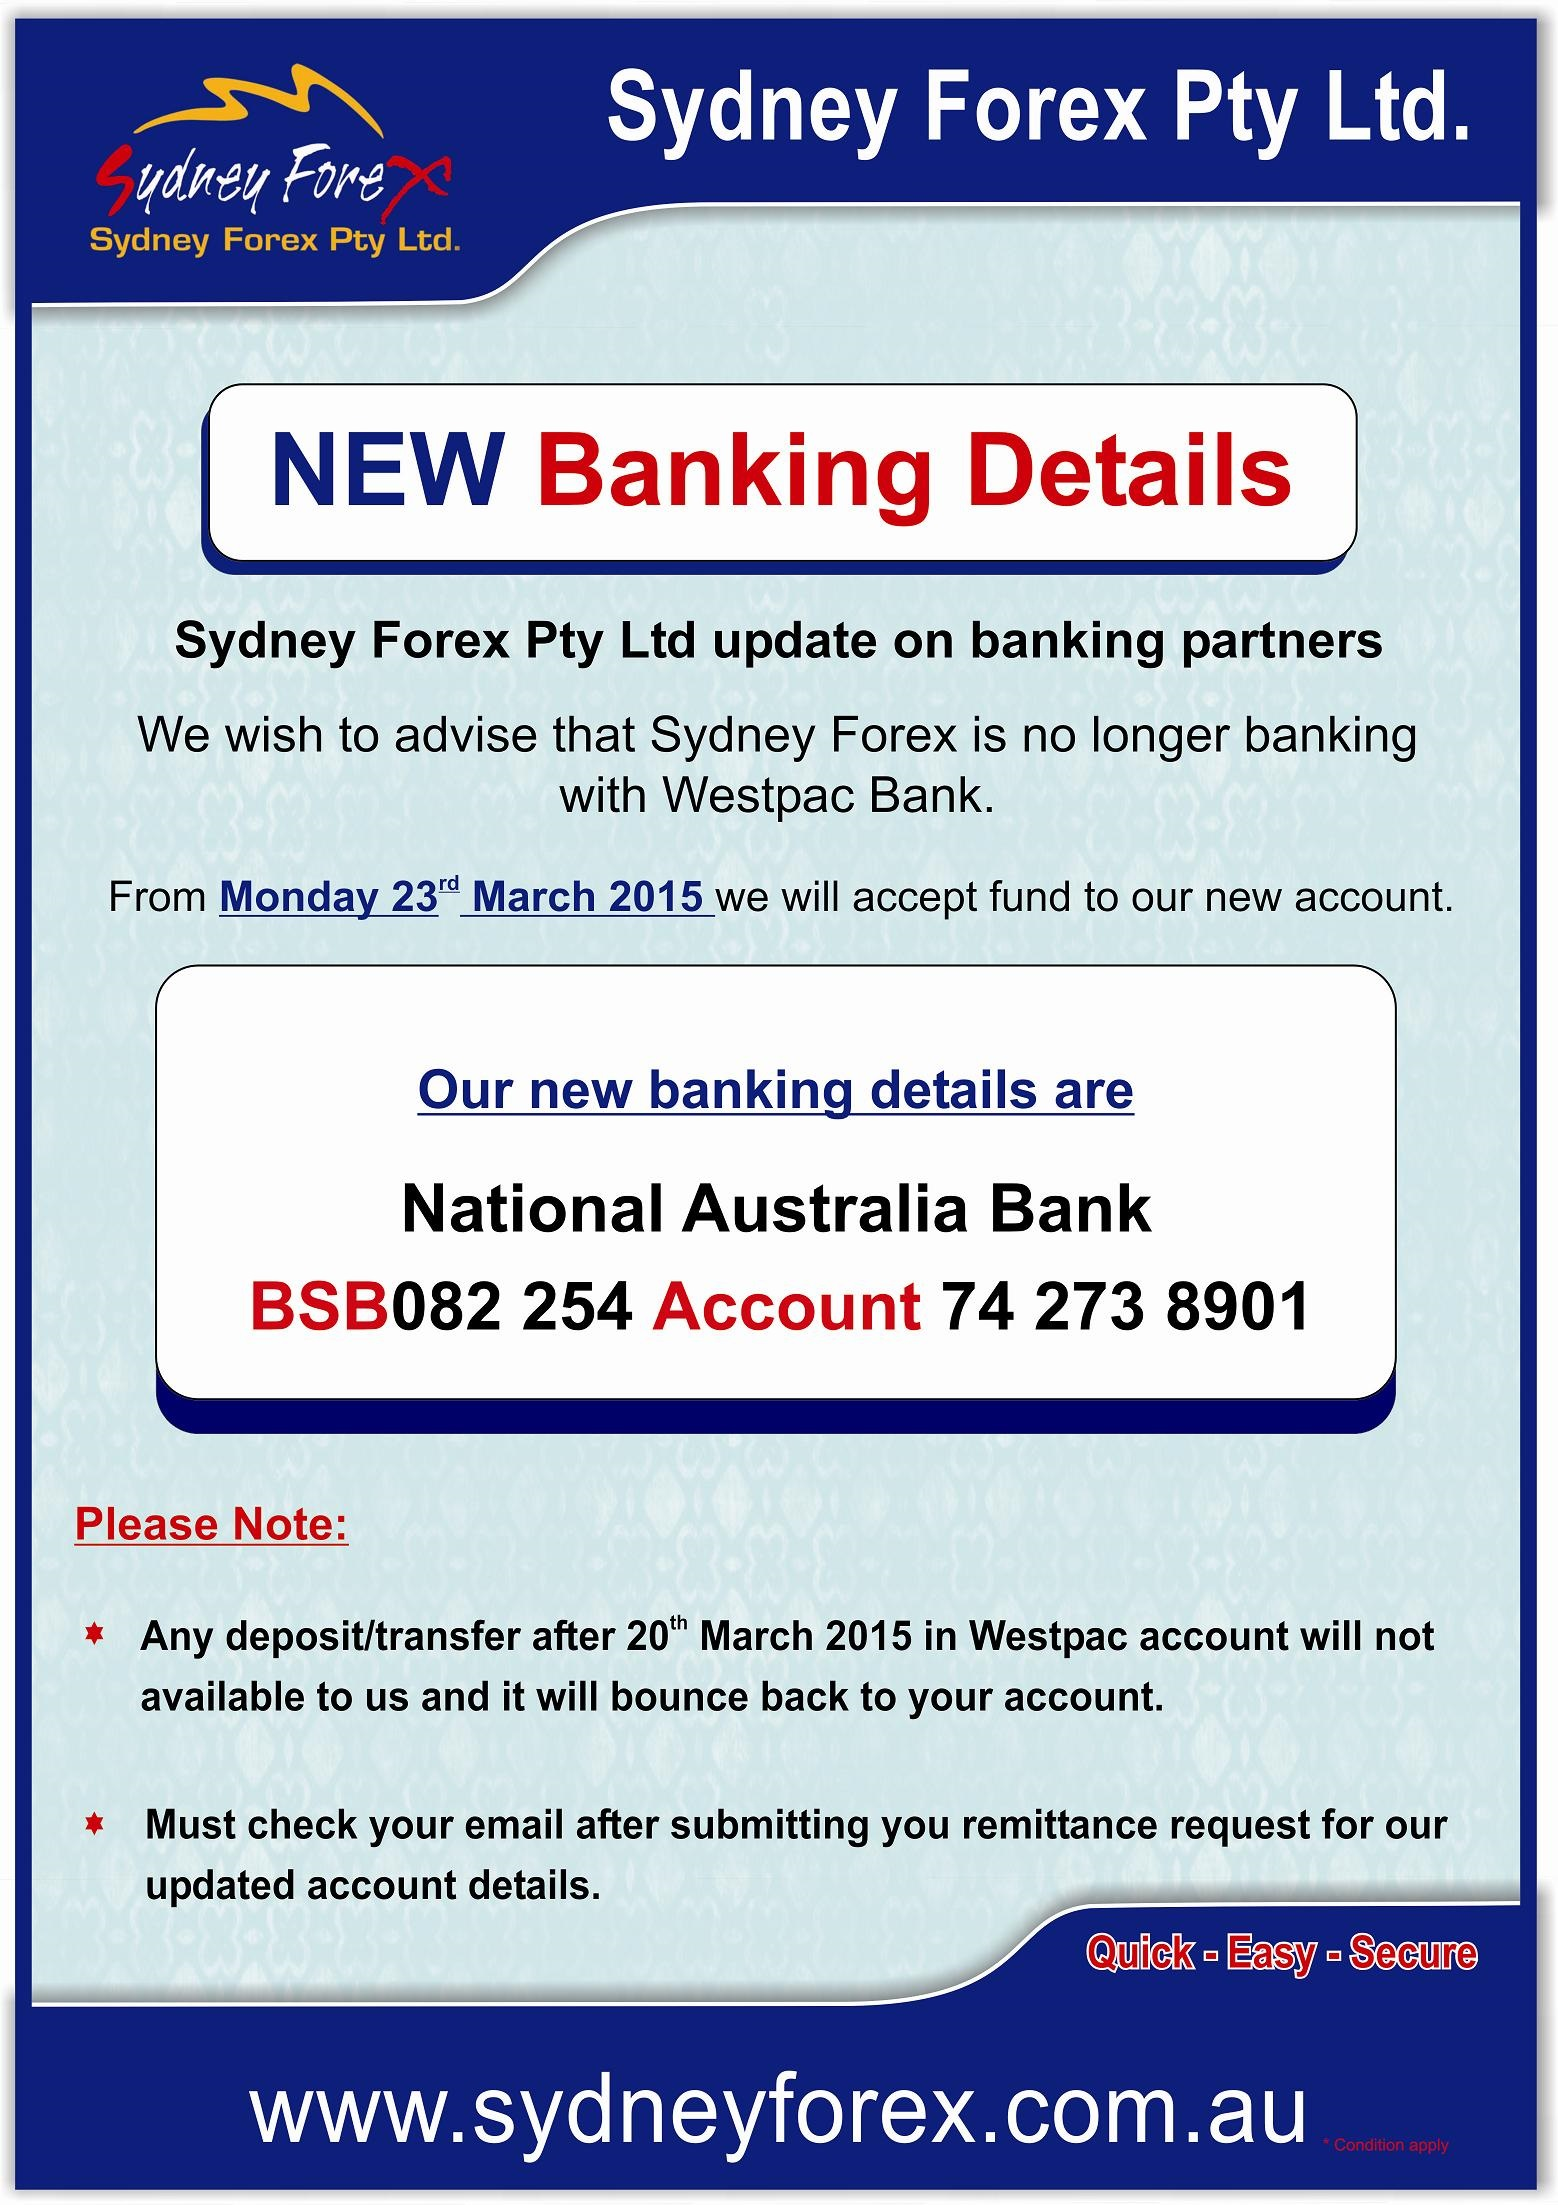 Sydney forex pty ltd